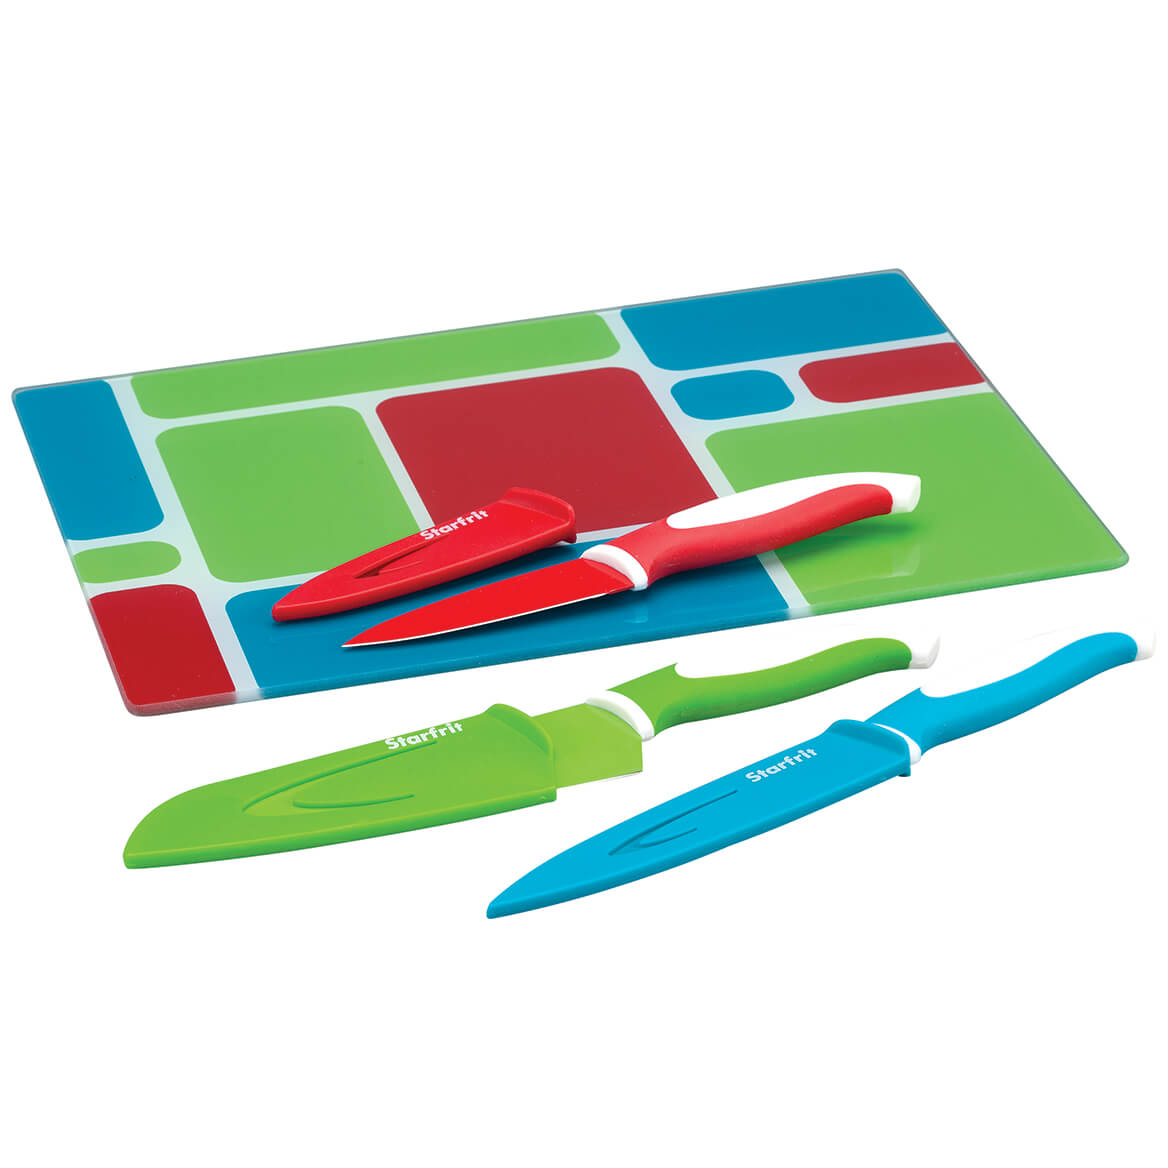 7 Pc Glass Cutting Board and Knife Set-370567